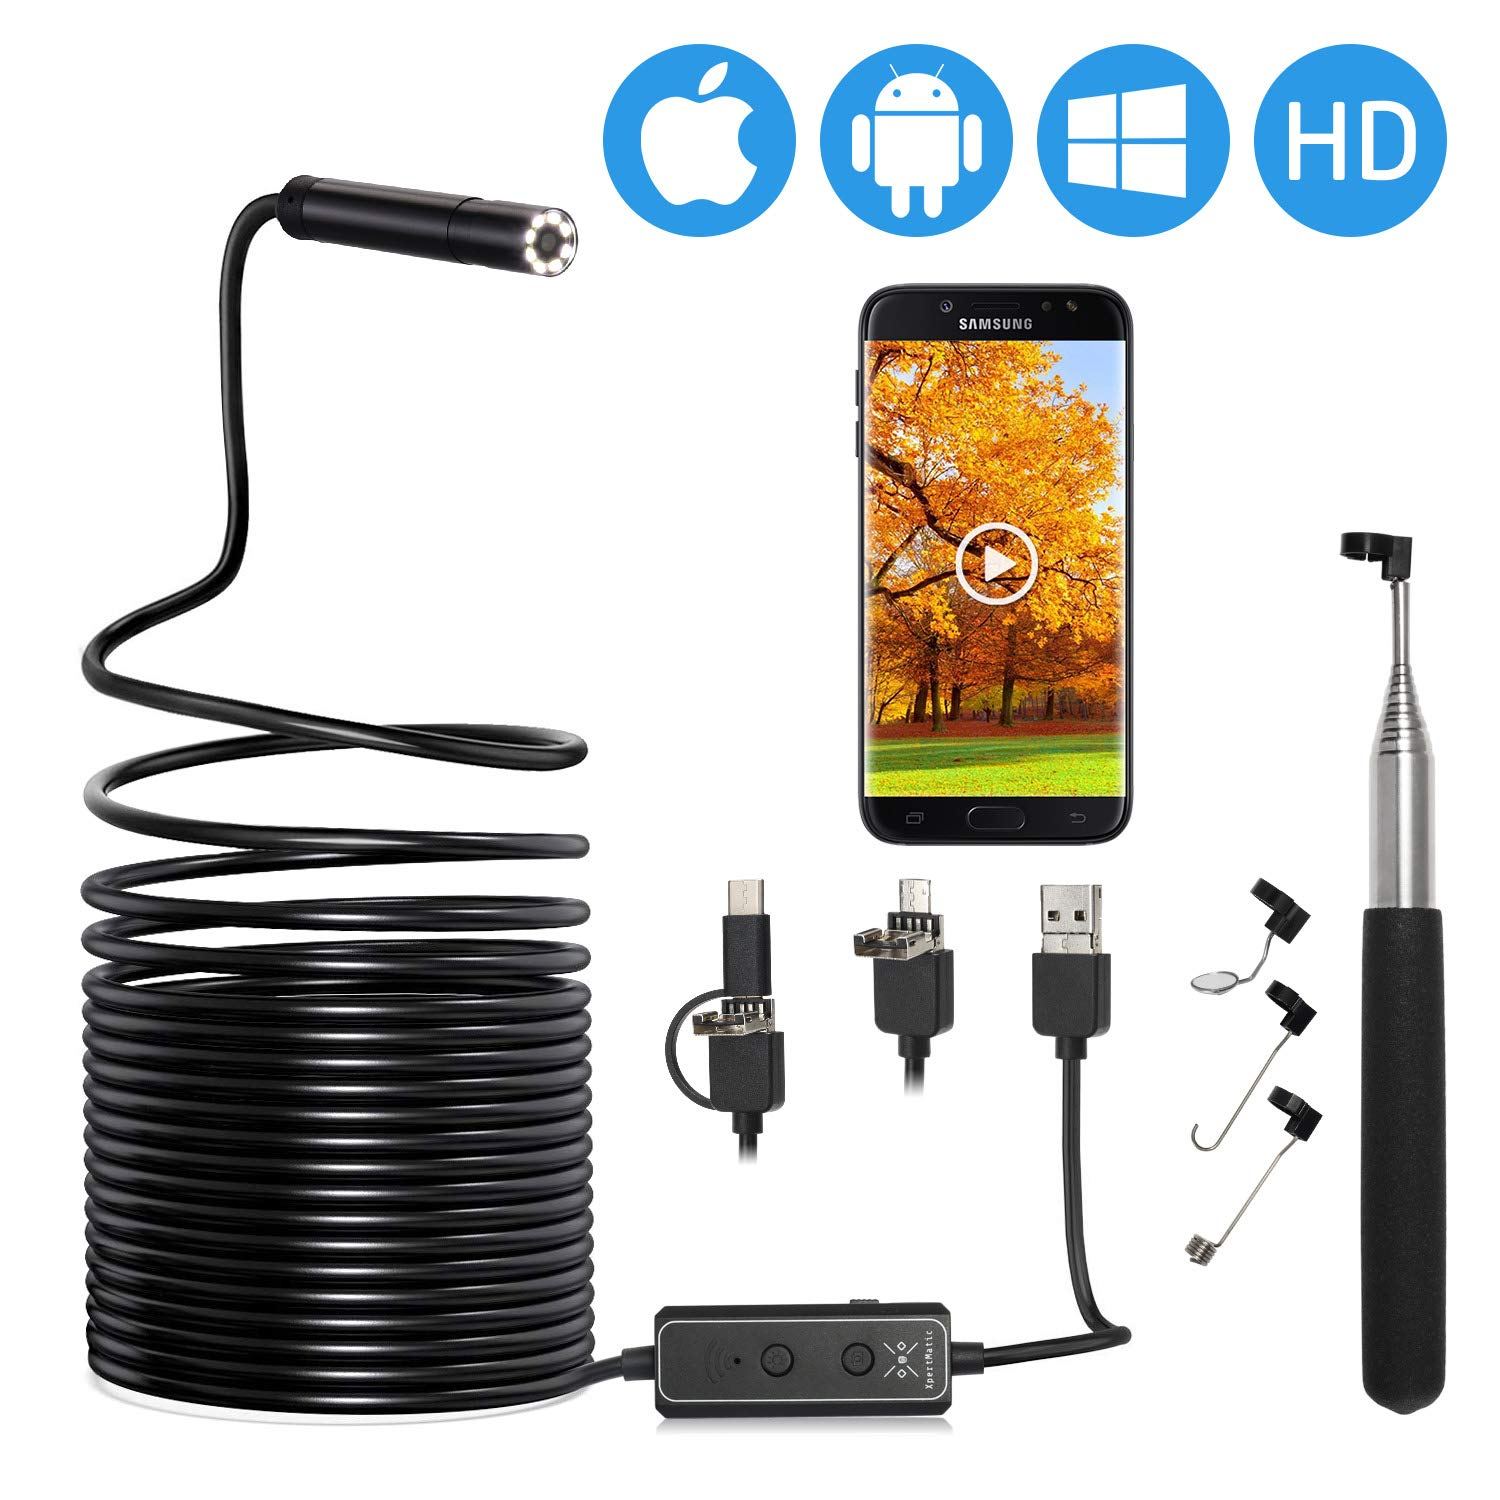 5m Semi-rigid PC XpertMatic F160 WiFi//USB 2-in-1 Endoscope 16.4ft Focal Distance Borescope 2.0 MP HD Waterproof Inspection Snake Camera with 8 LEDs for iPhone and Android Phone MacBook